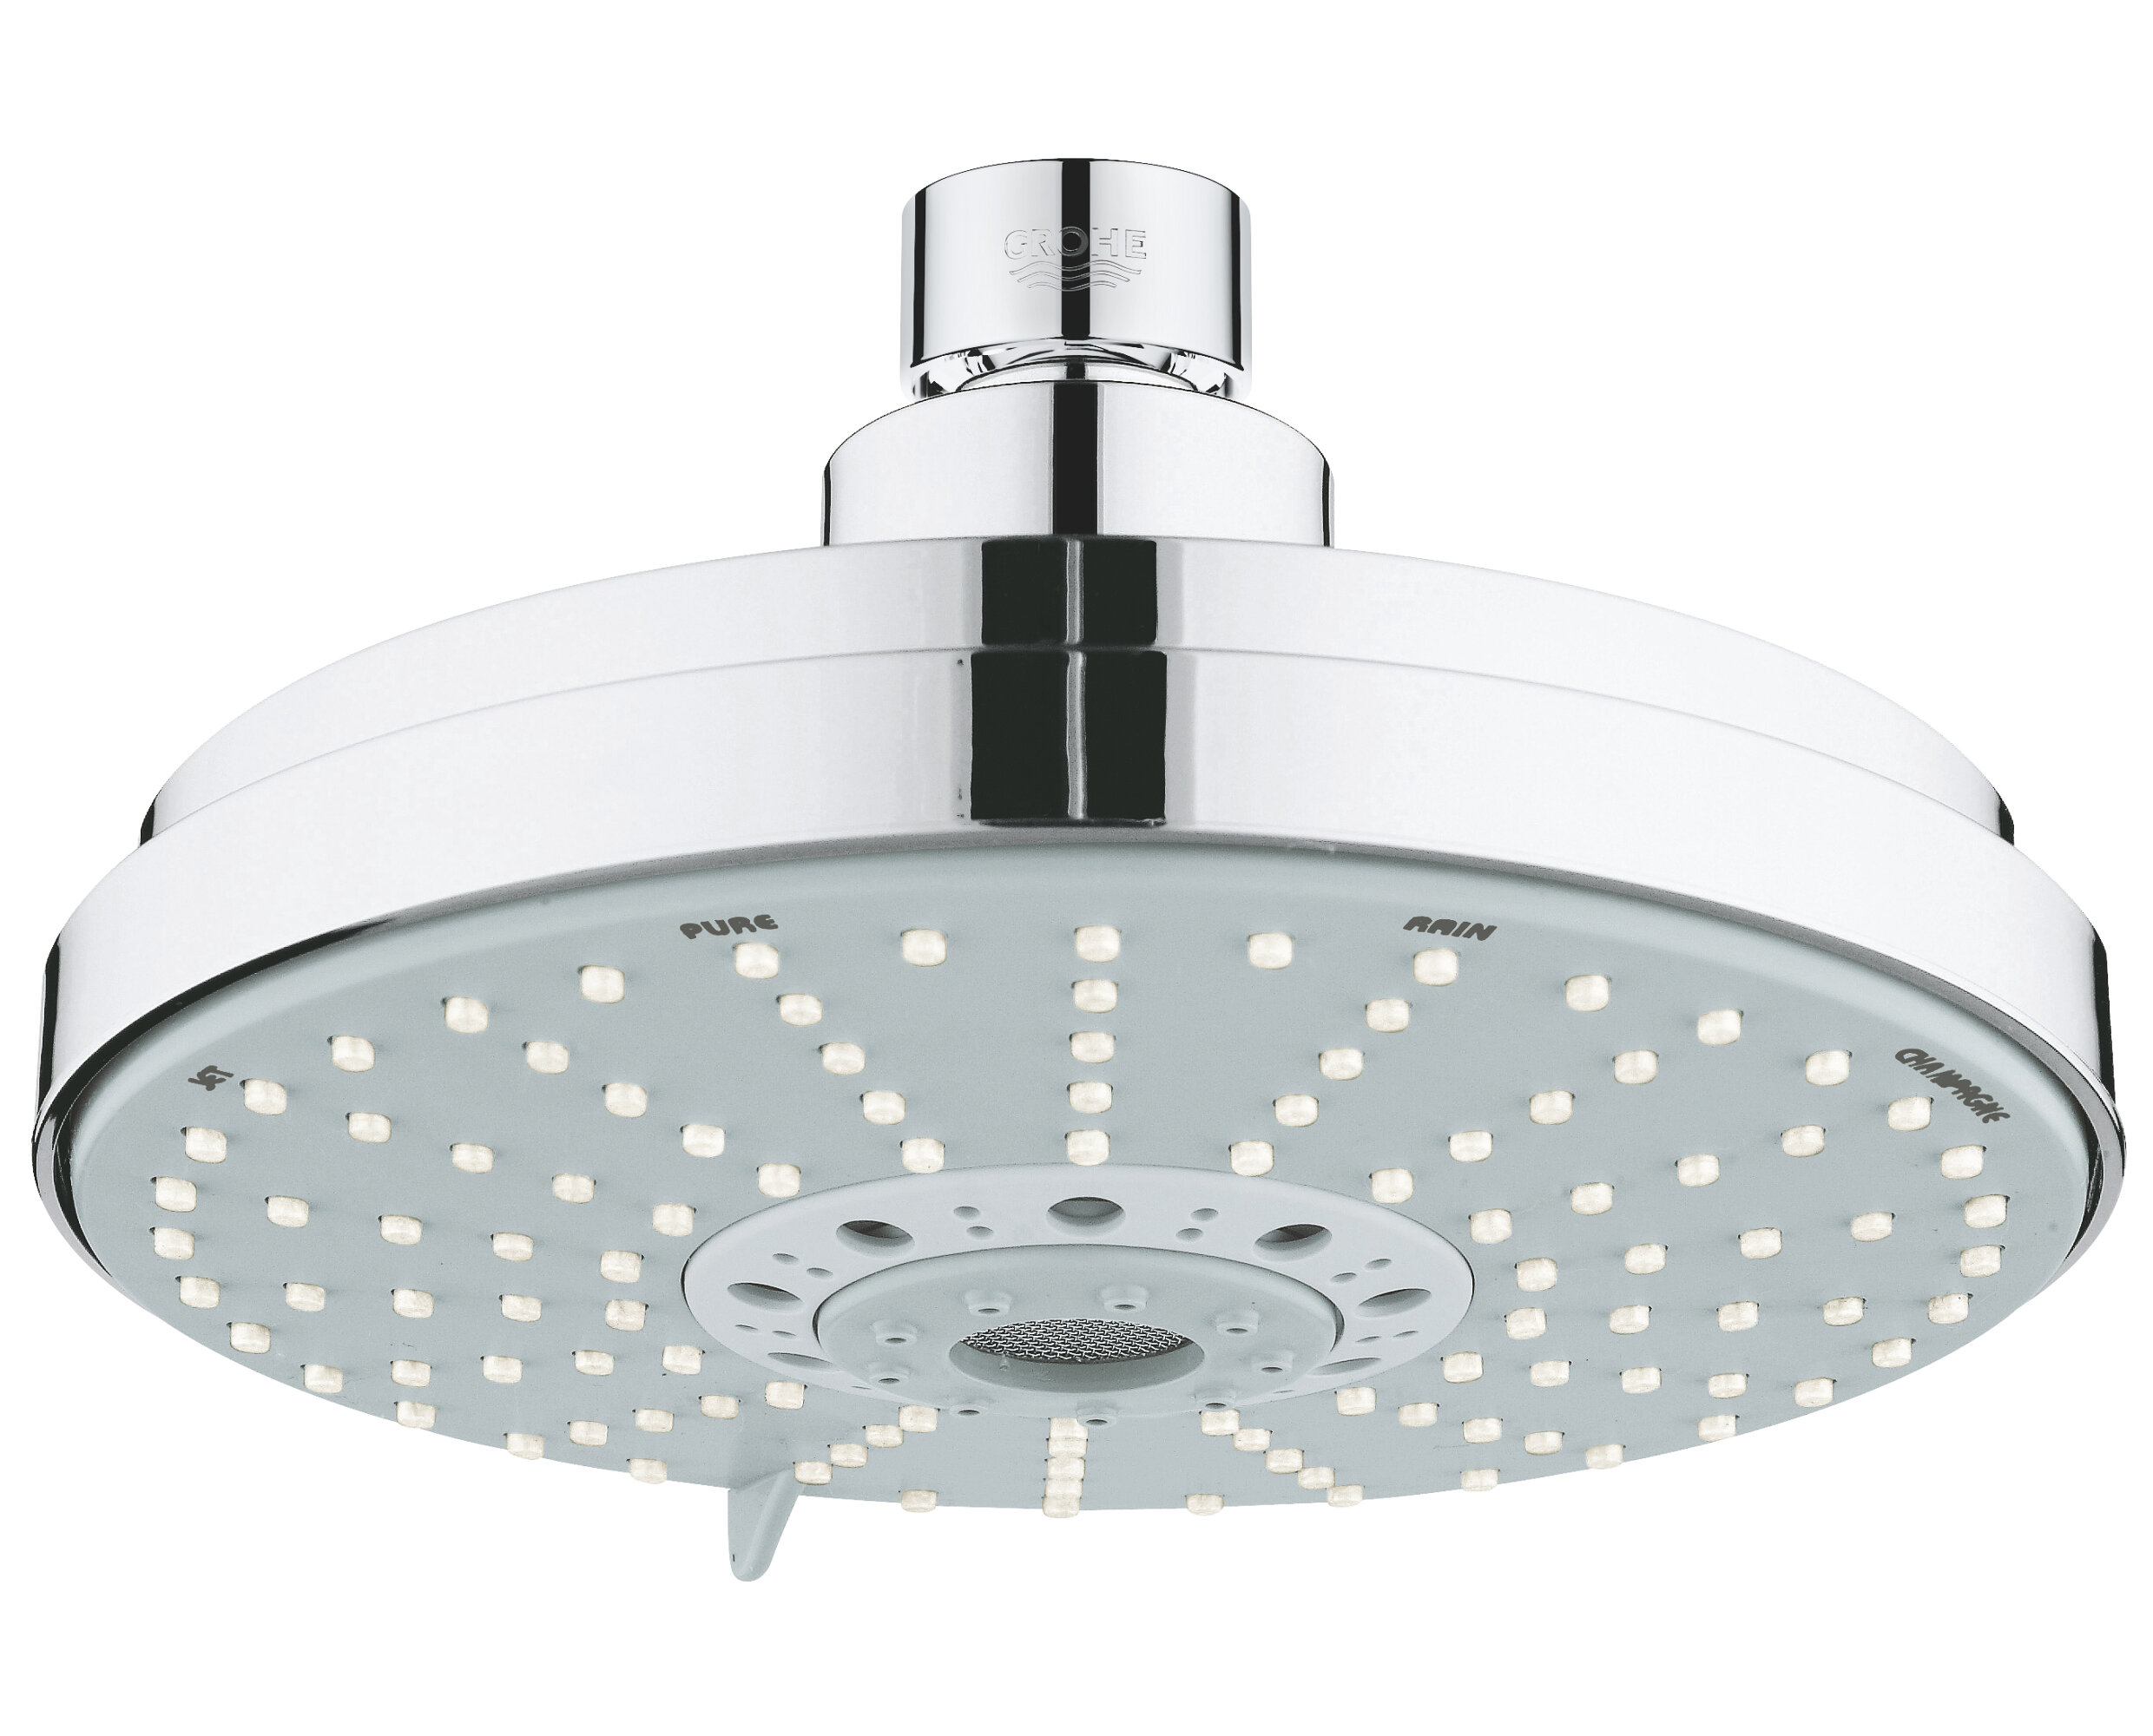 Rainshower Diverter Multi Function Rain Shower Head With Dreamspray